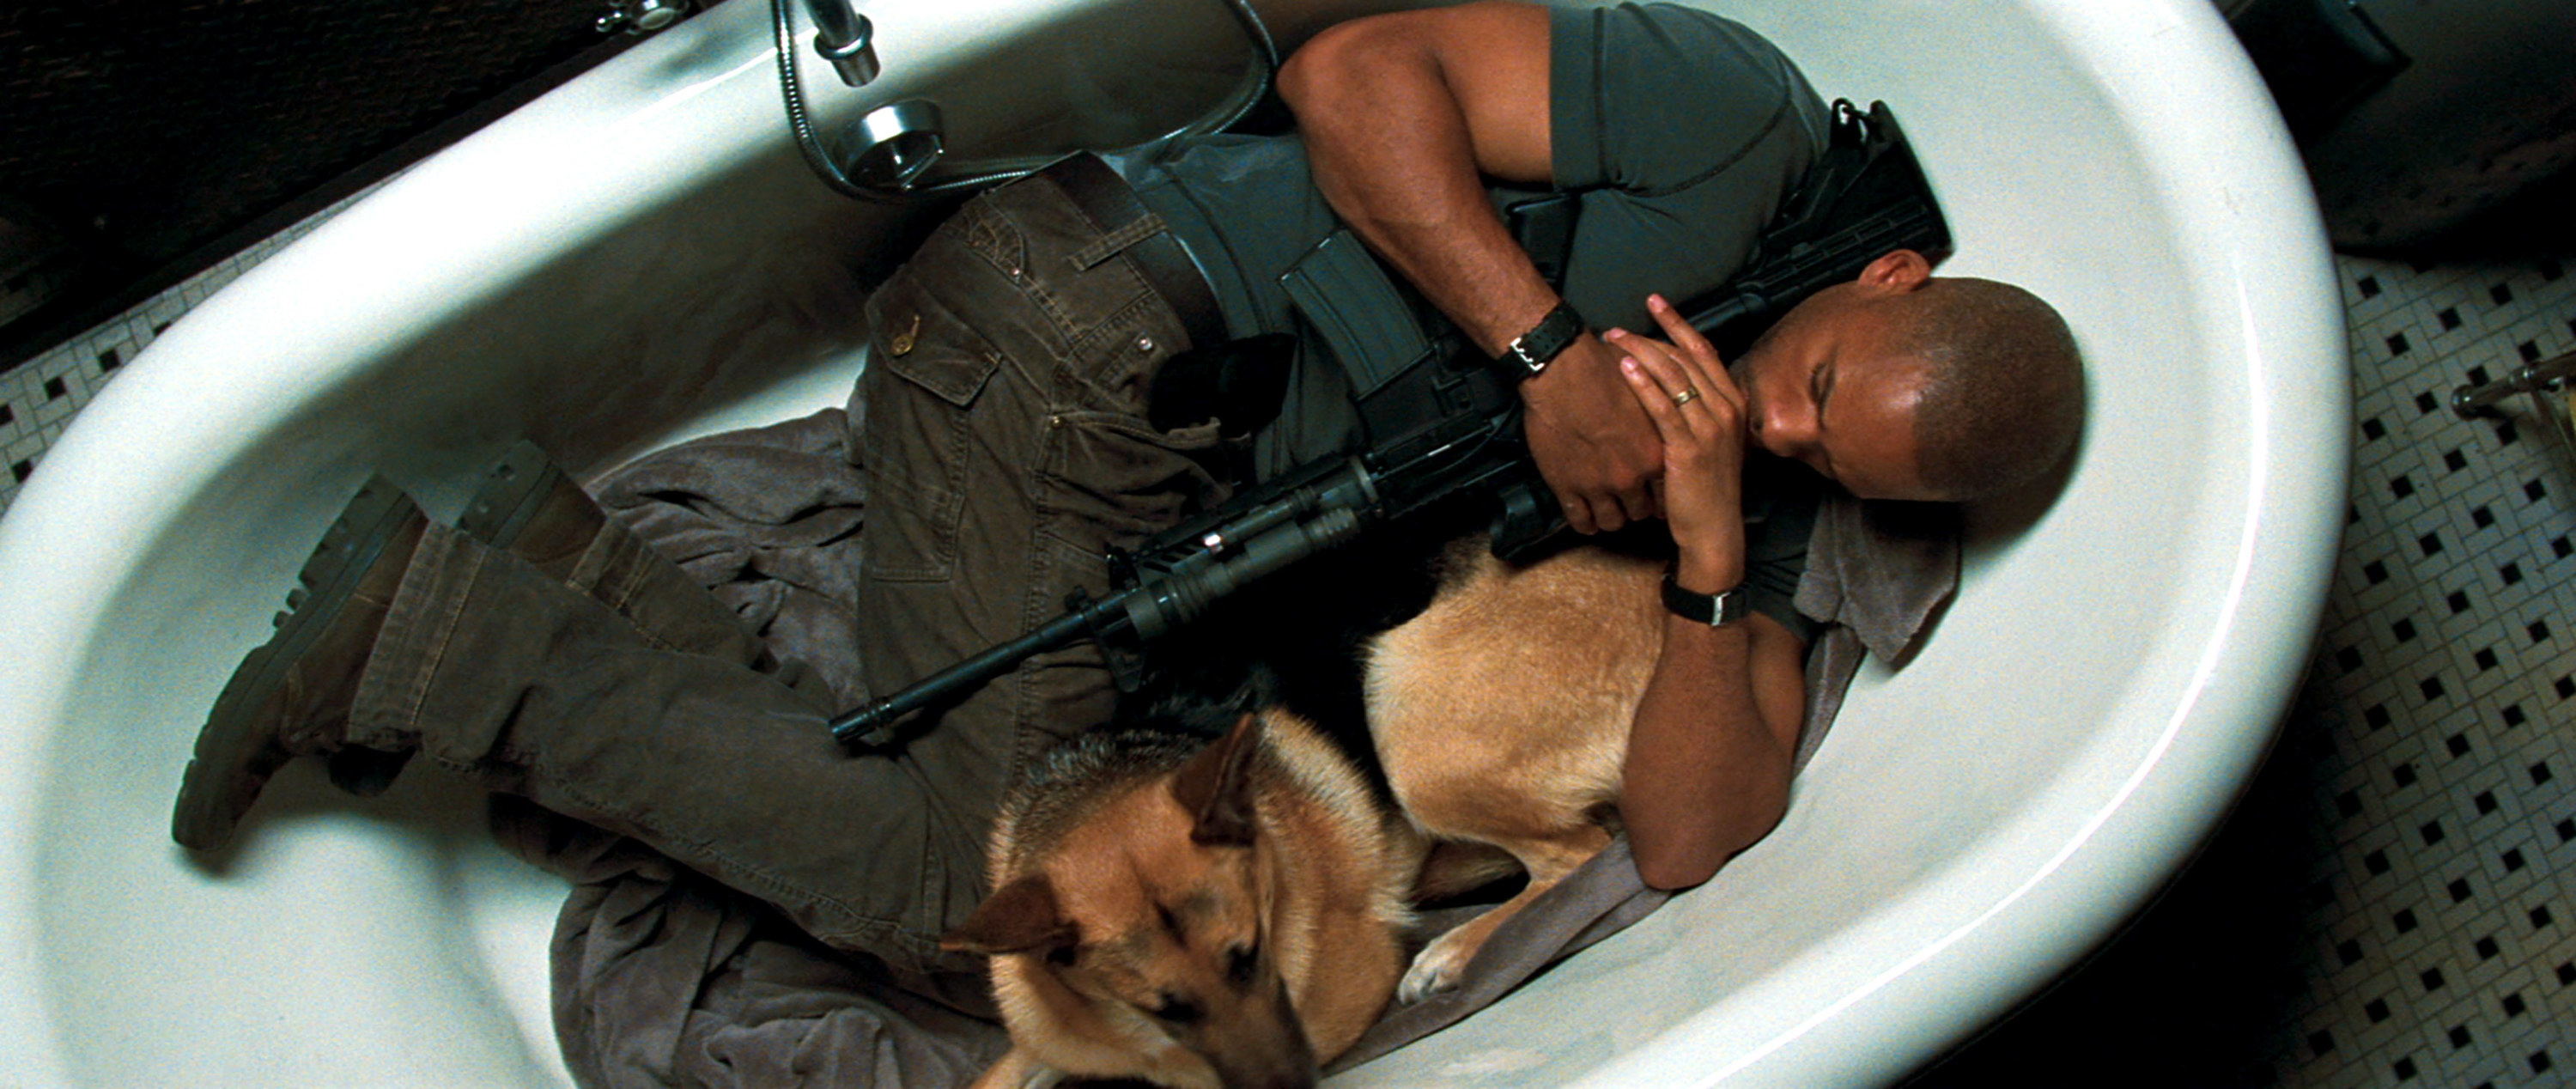 Dr. Neville clutching a gun while sleeping in a bathtub with his dog Sam